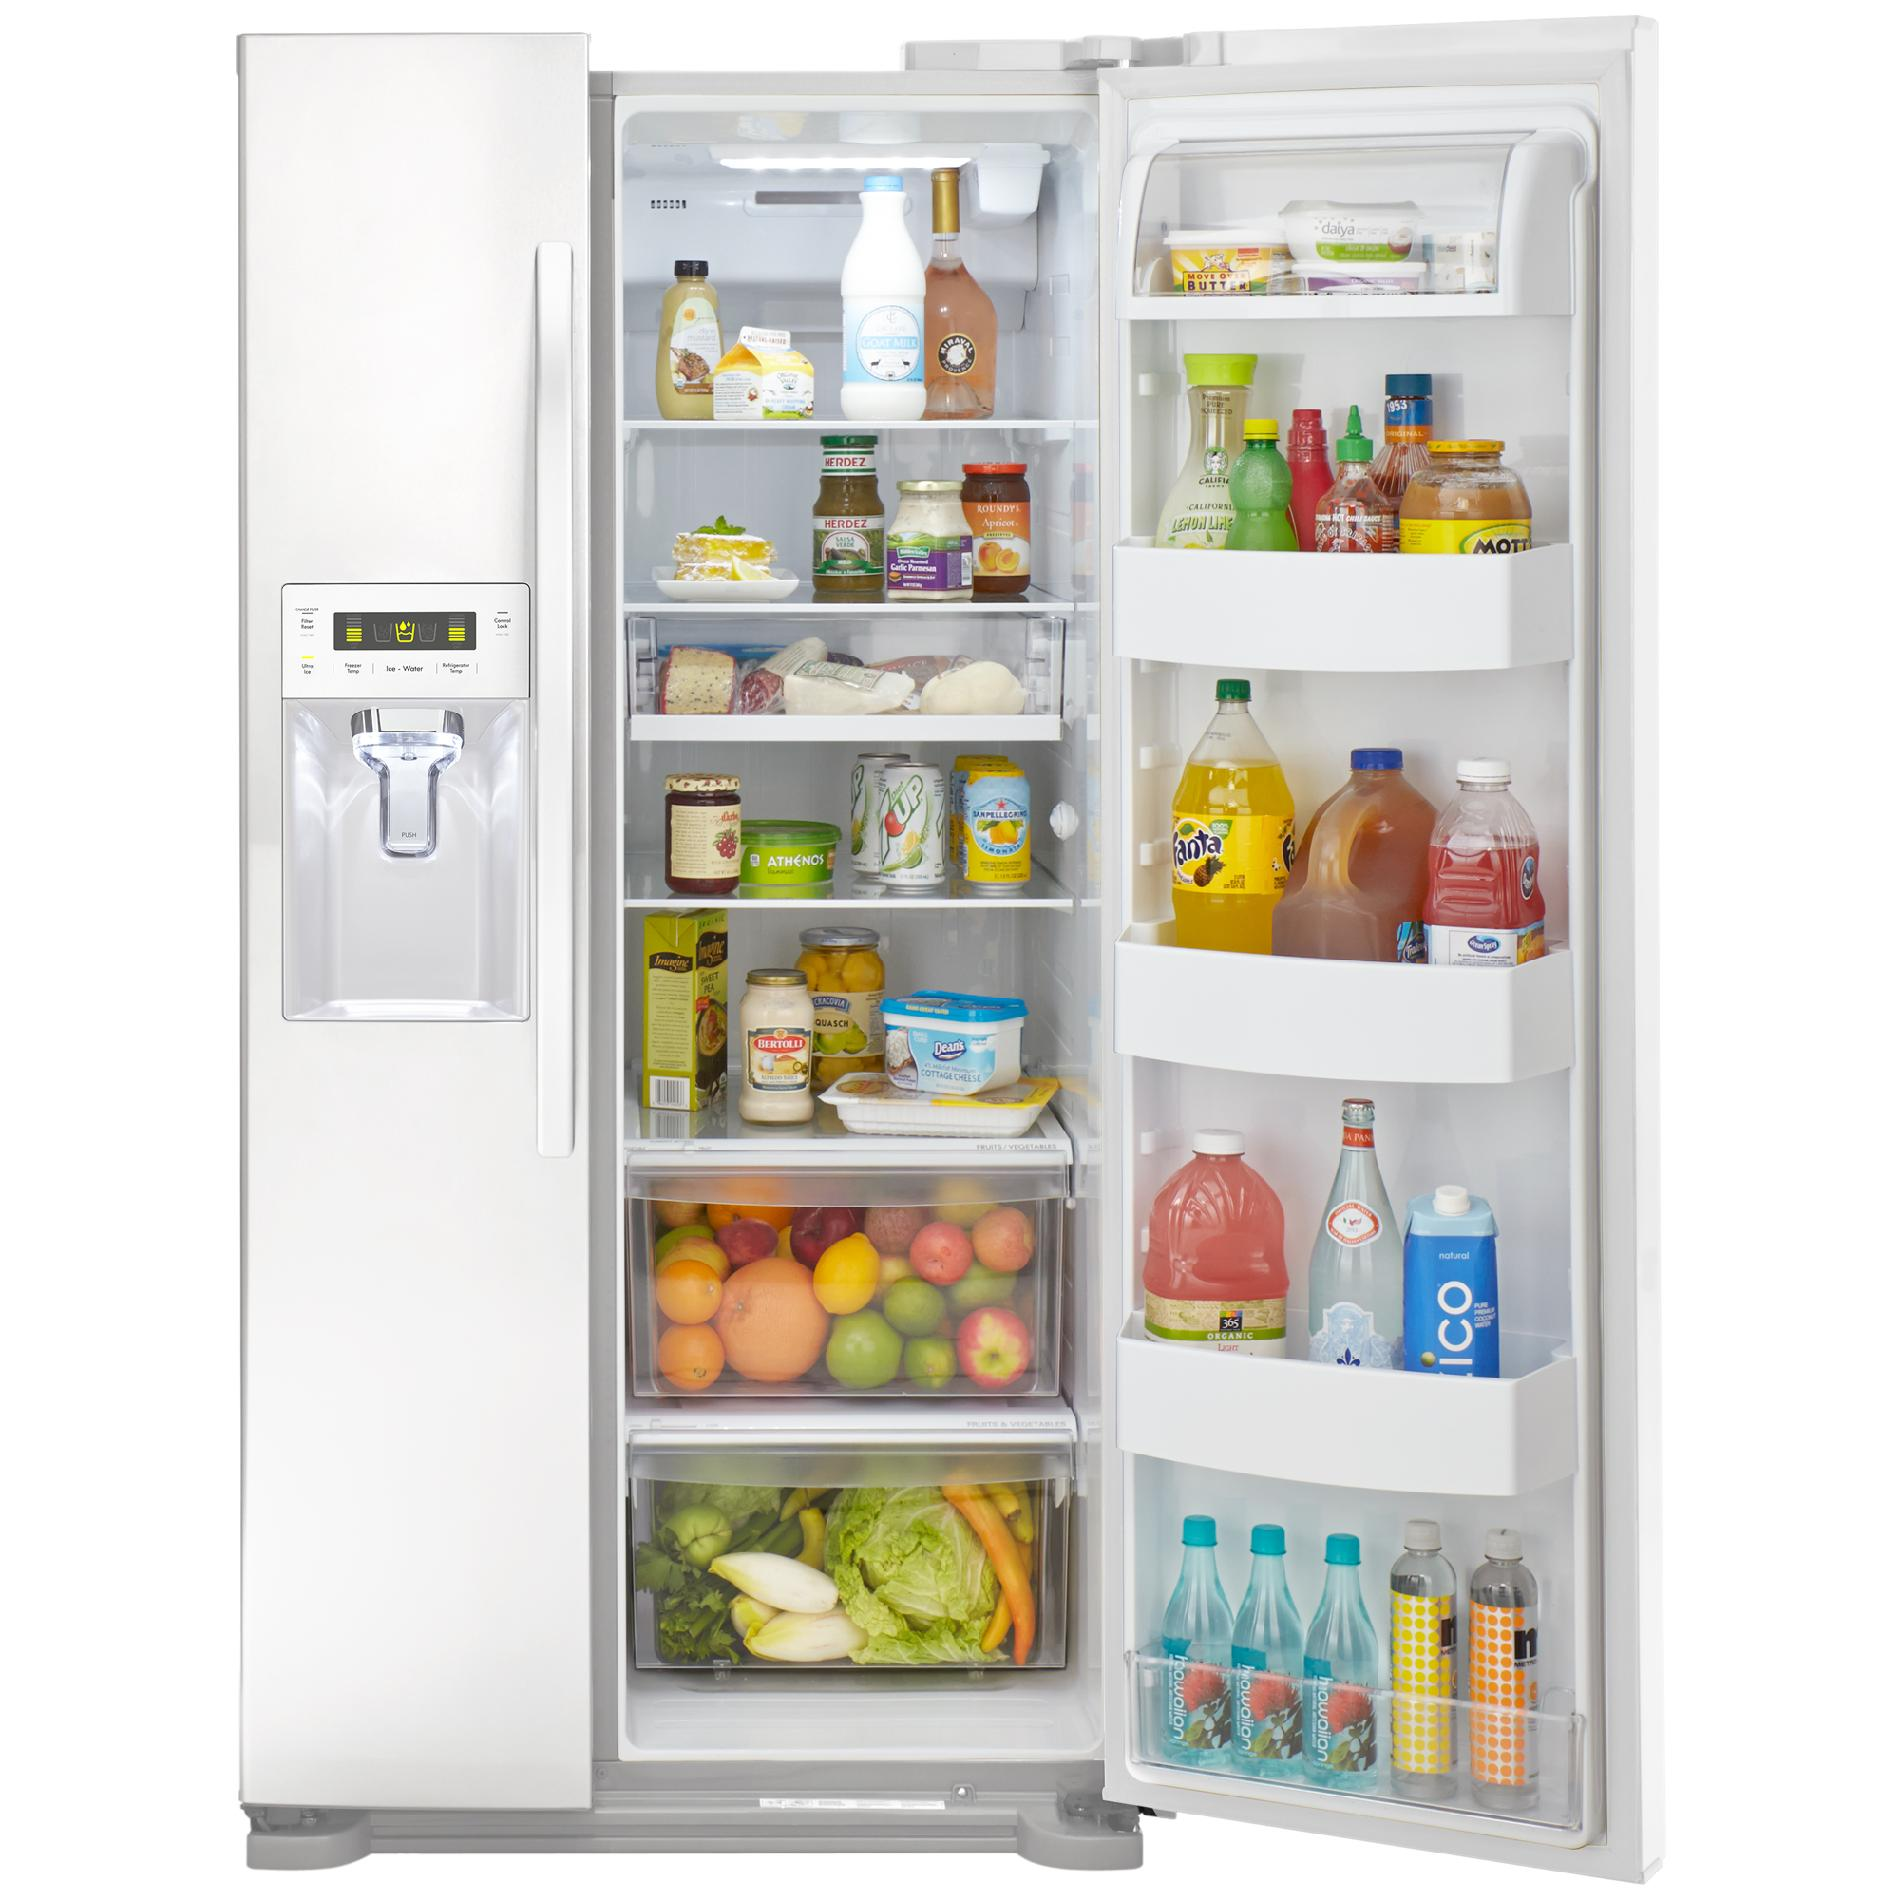 Kenmore 51812 21.9 cu. ft. Side-by-Side Refrigerator w/ Dispenser - White